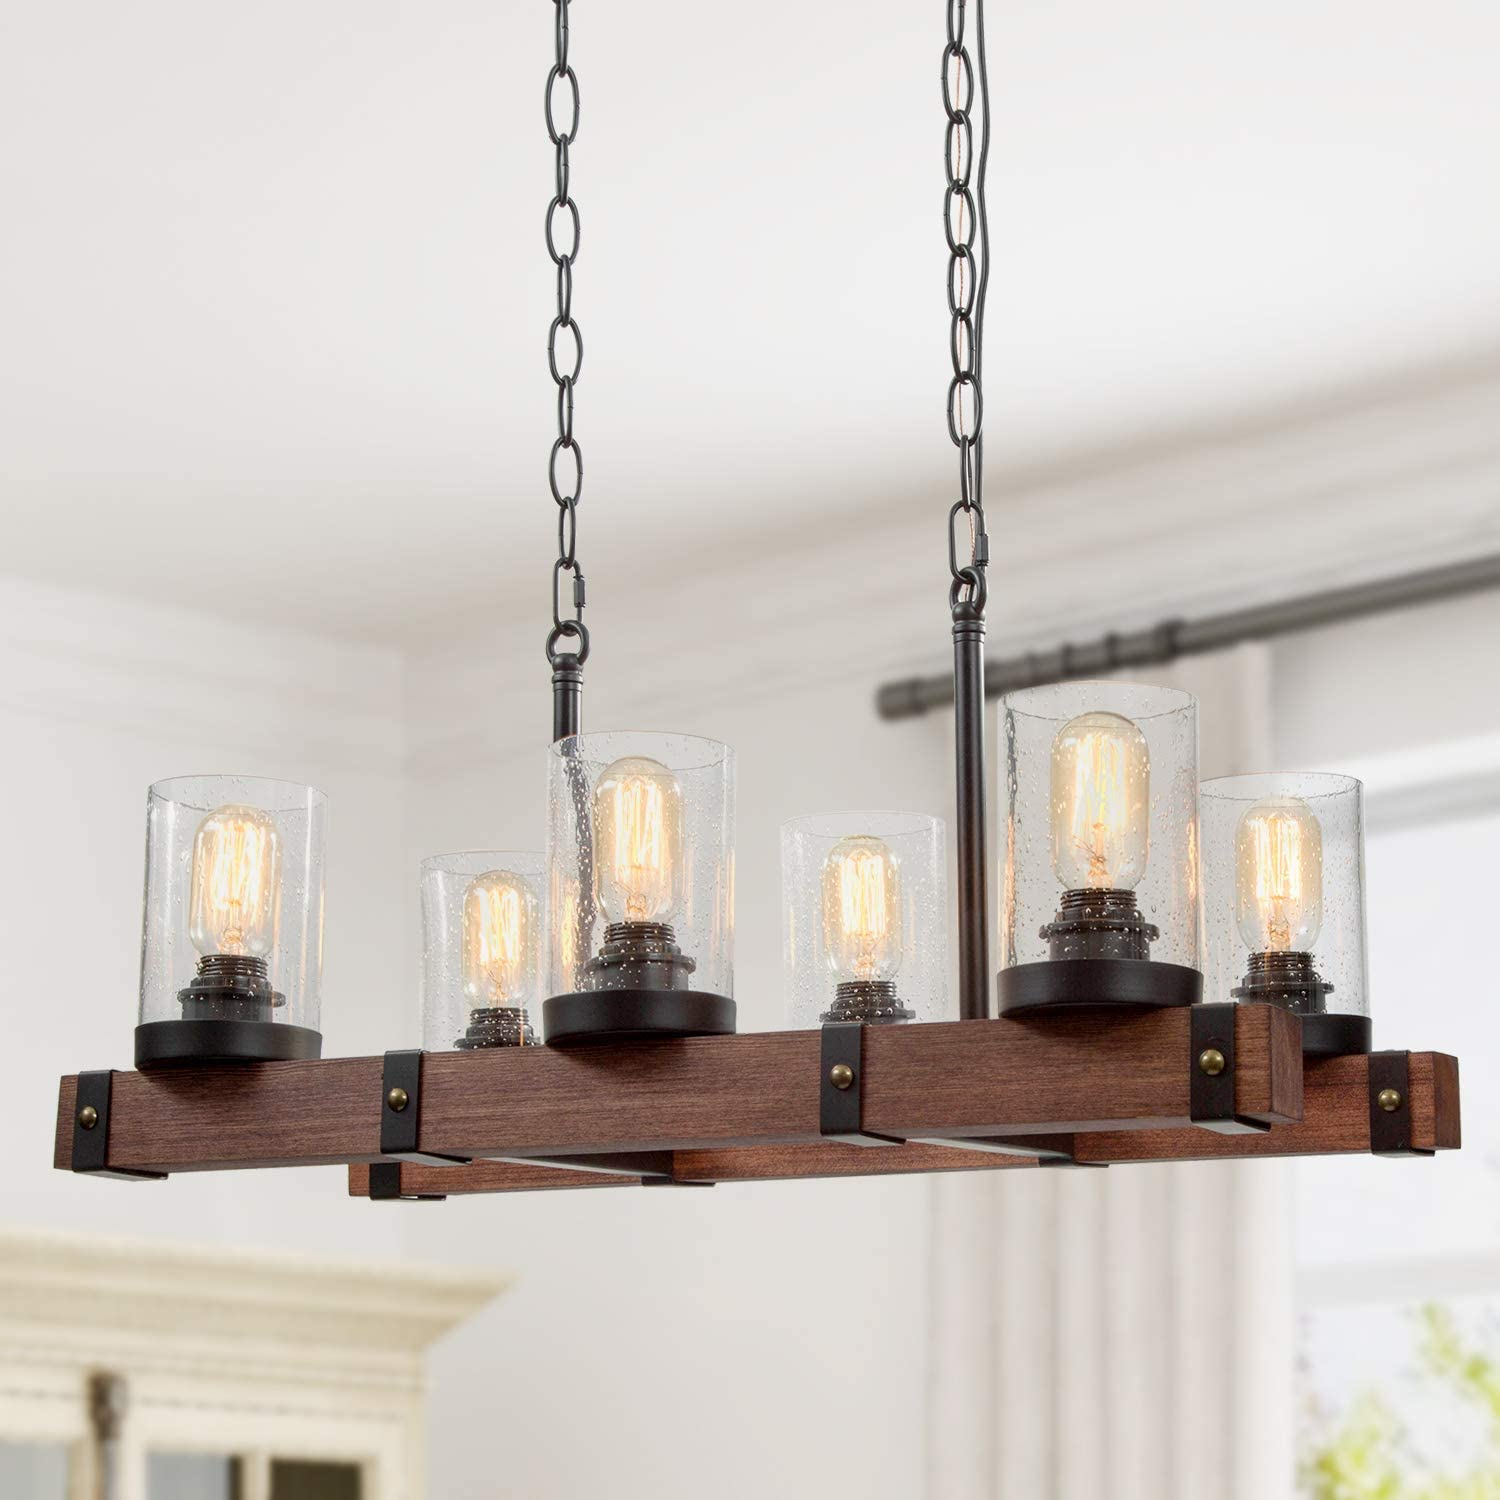 Ruziniu Farmhouse Chandelier For Dining Rooms 6 Lights Kitchen Island Lighting Rectangle Wood Chandelier With Seeded Glass Shade Amazon Com